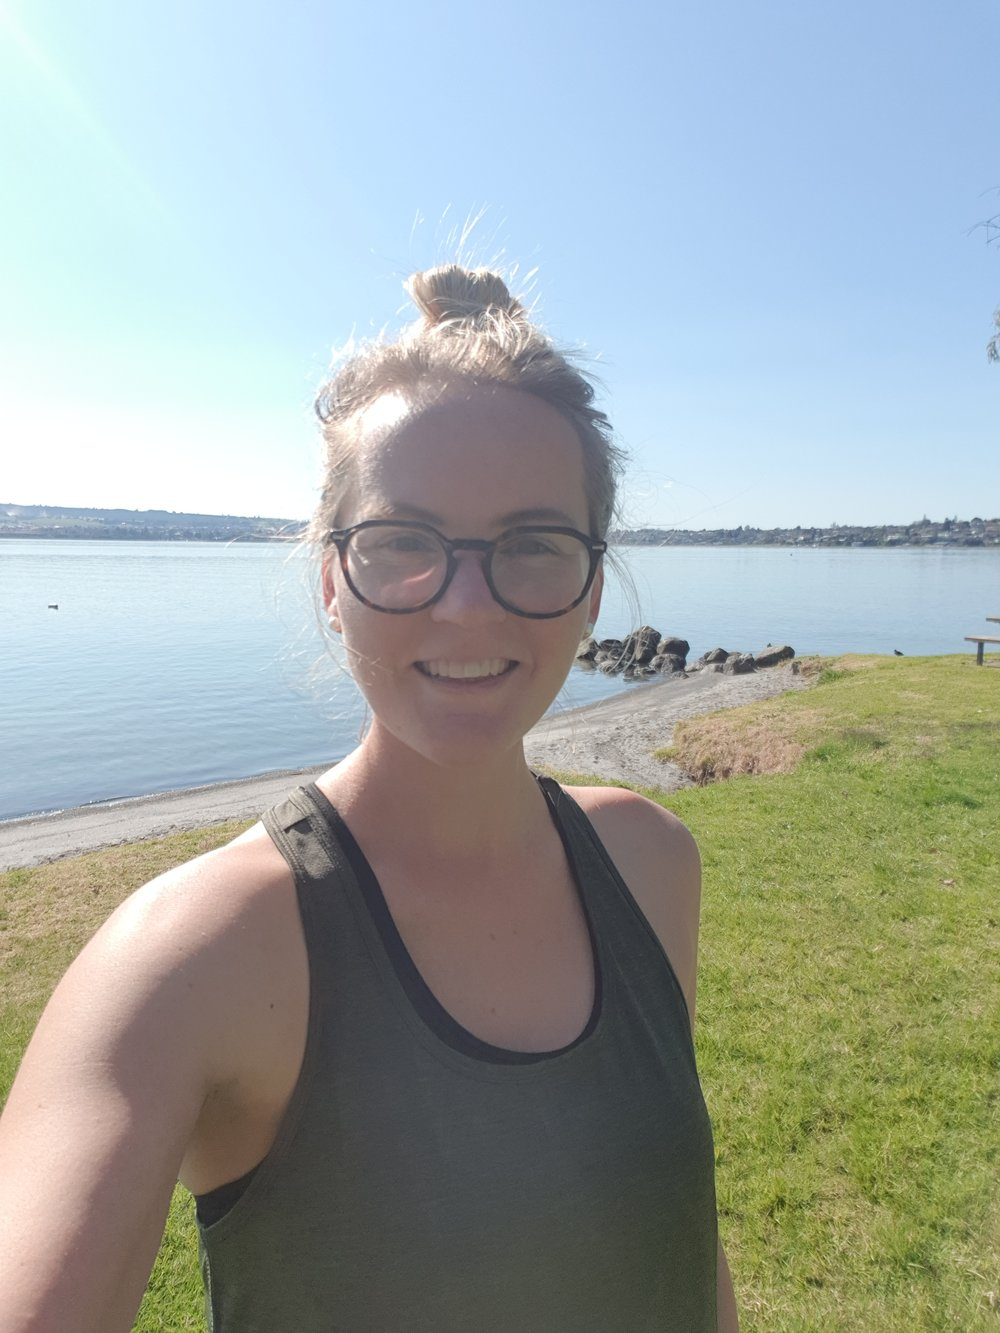 BERRIE O'CONNOR - TAUPO ONE STEPBerrie is a super mum. She is currently raising her one year old daughter, and working as a nurse in Taupo. Berrie loves long distance running and is passionate about spreading the secret of how beneficial running is for our mental health.Berrie has suffered from her own mental health battles in the past and has had first-hand experience with running being the tool to aid recovery.Berrie is a friendly and welcoming runner who would love to have you along to the Taupo One Step community.Berrie is a leader at the Taupo One Step community.